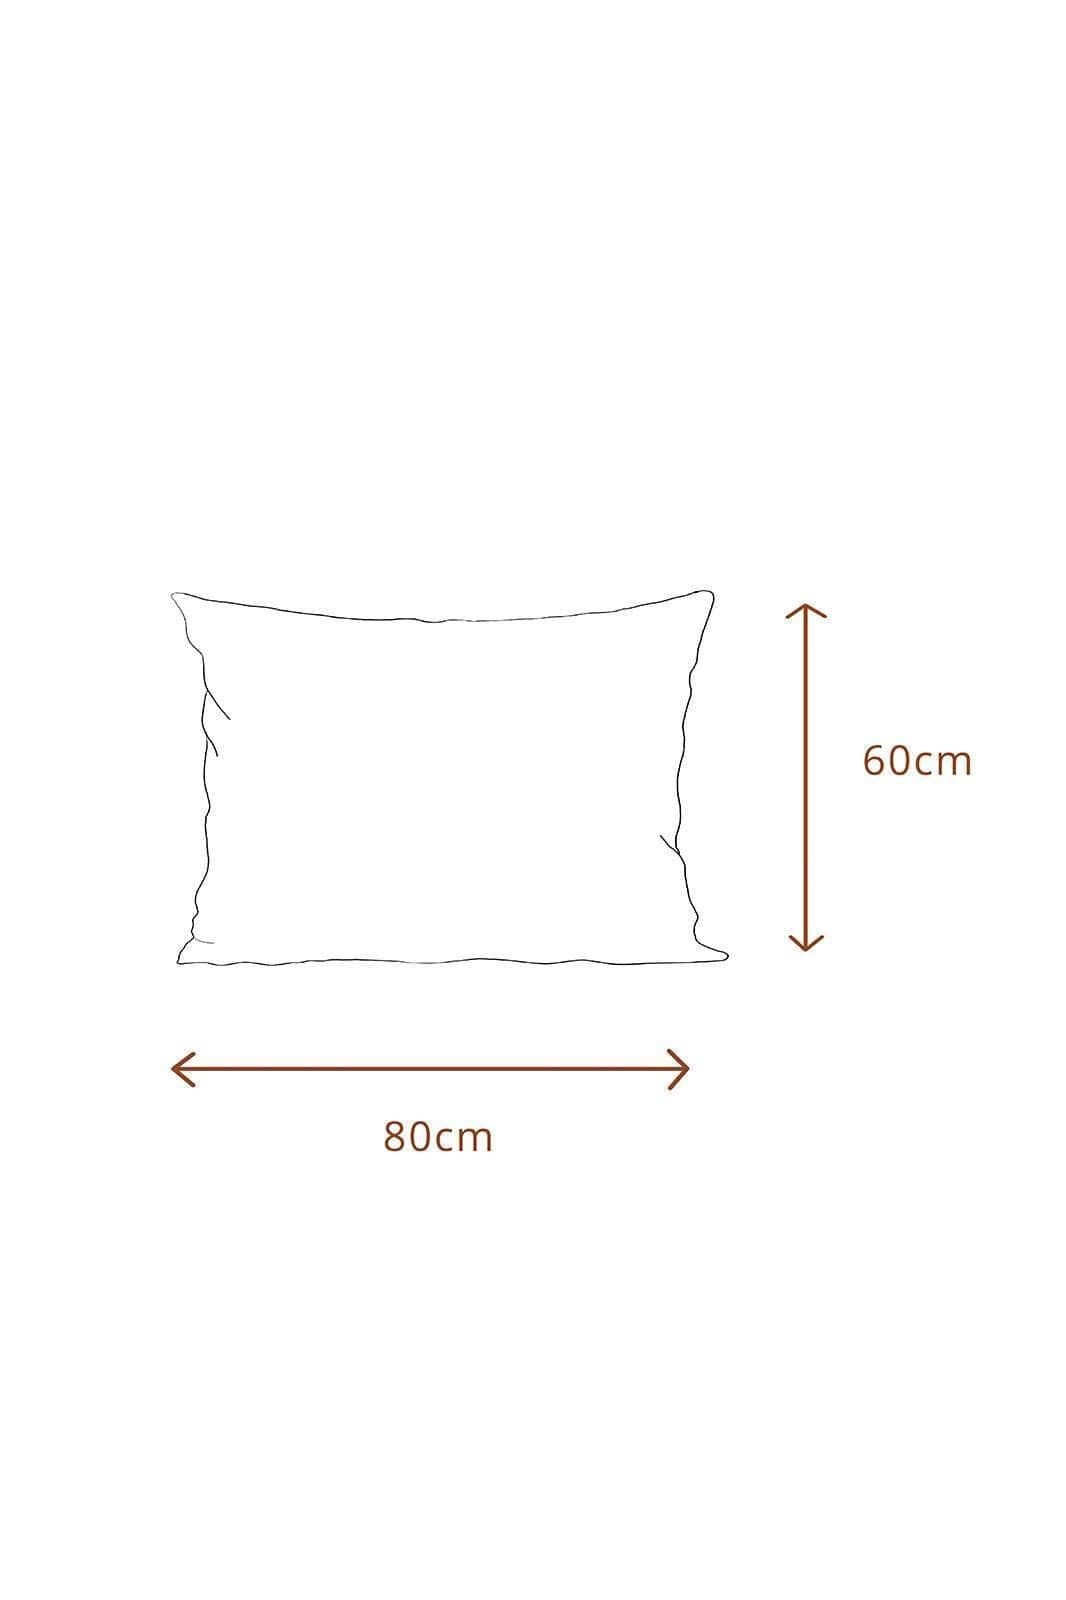 arkitaip Pillowslips 60 x 80cm / White The Ruffled Casita Linen Pillowslips Set in White